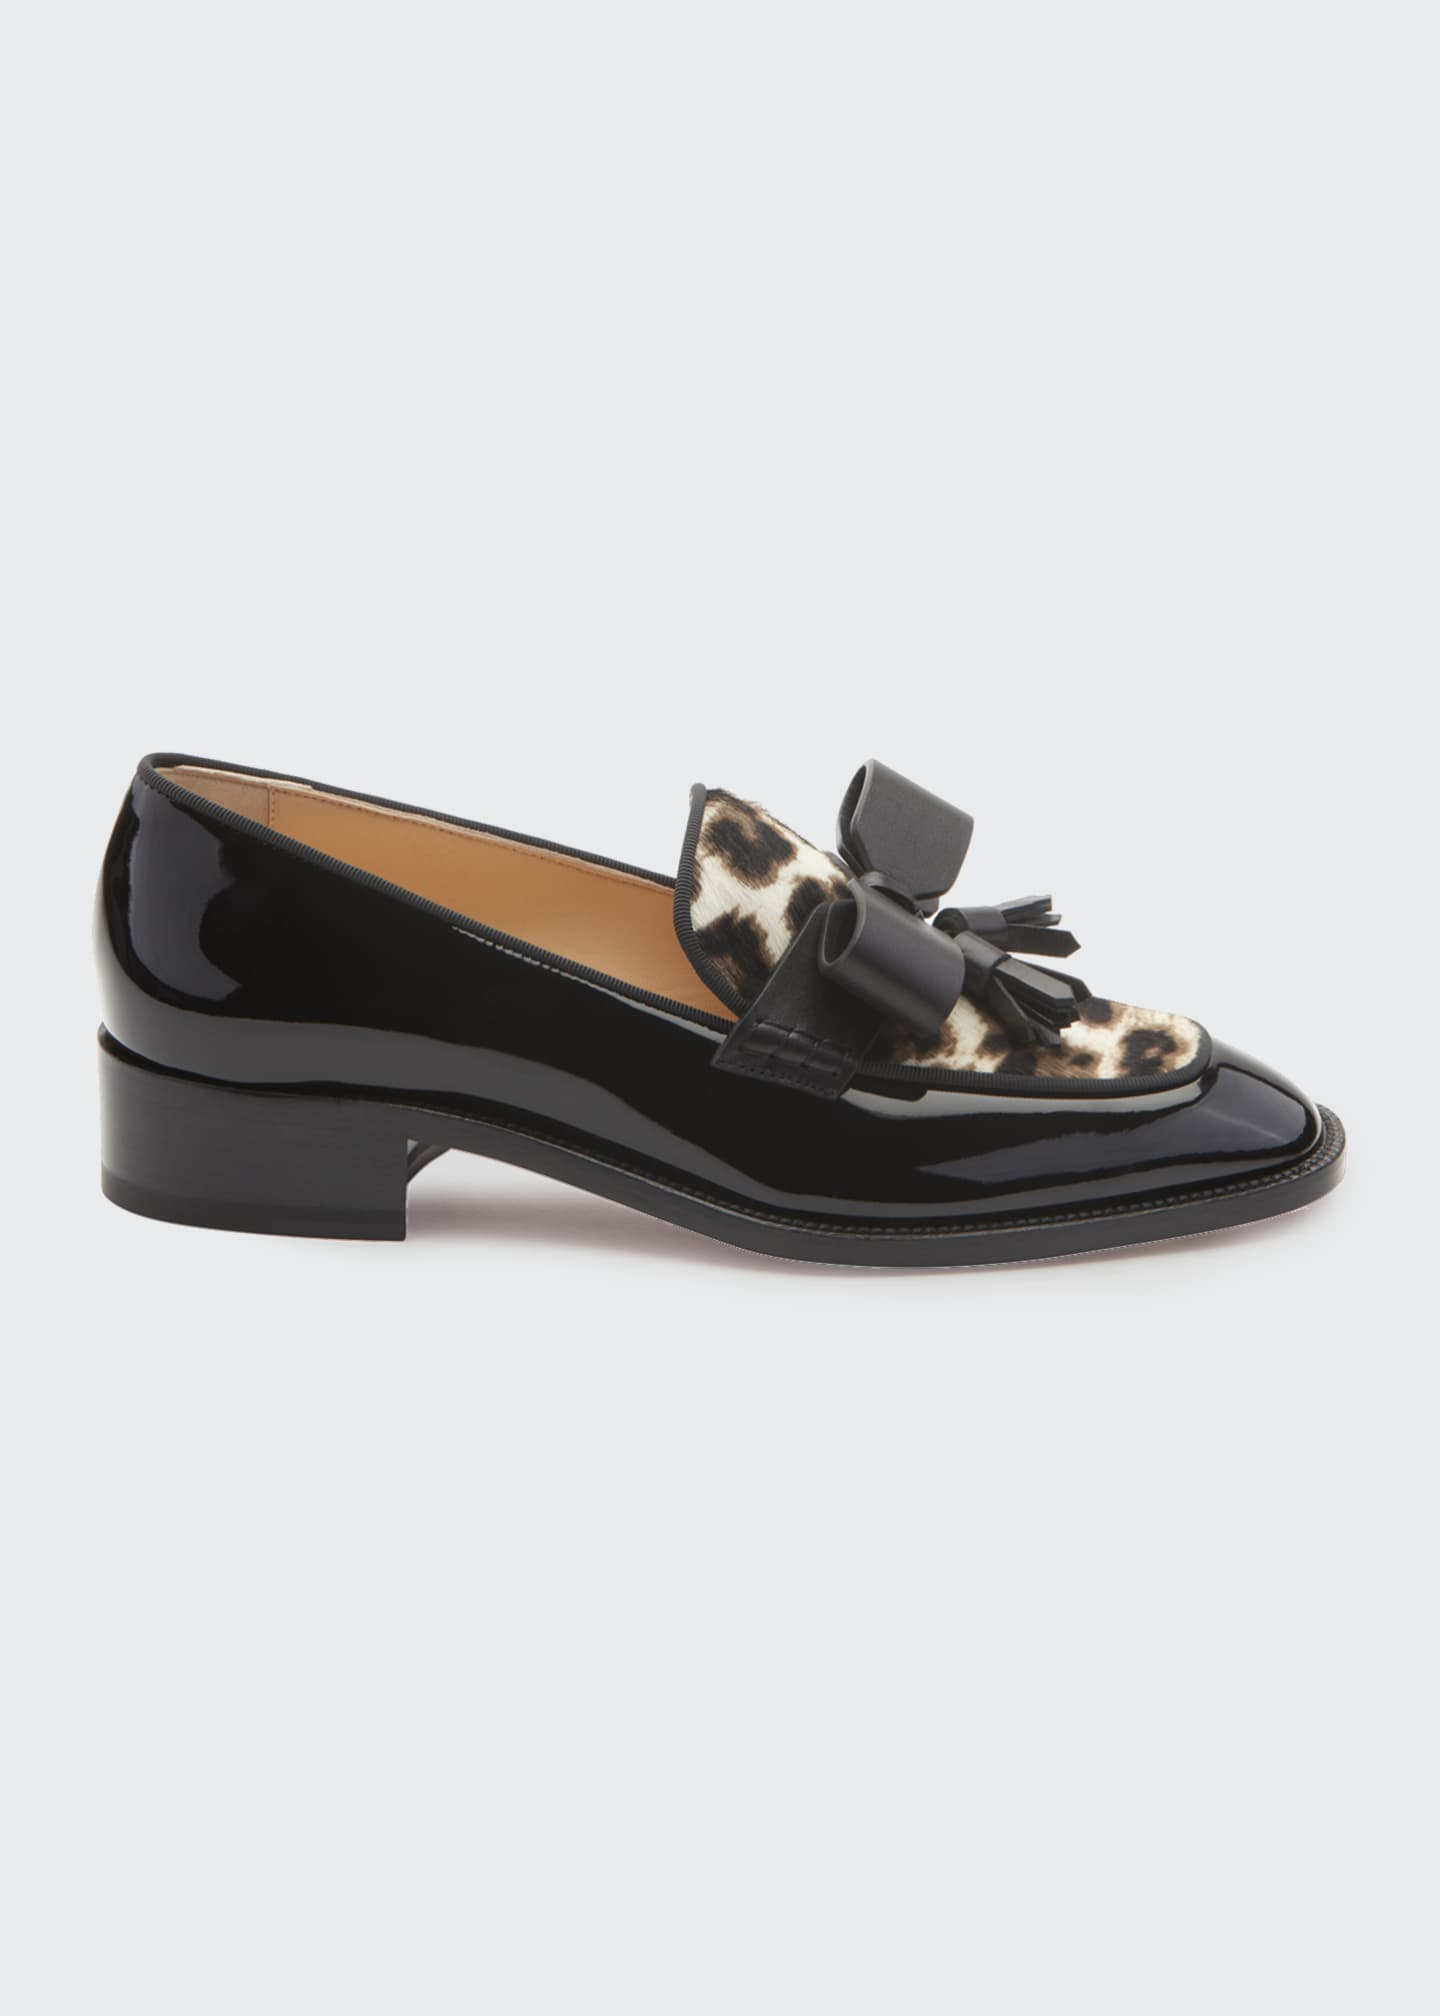 Christian Louboutin Carmela Patent Loafers with Leopard Calf